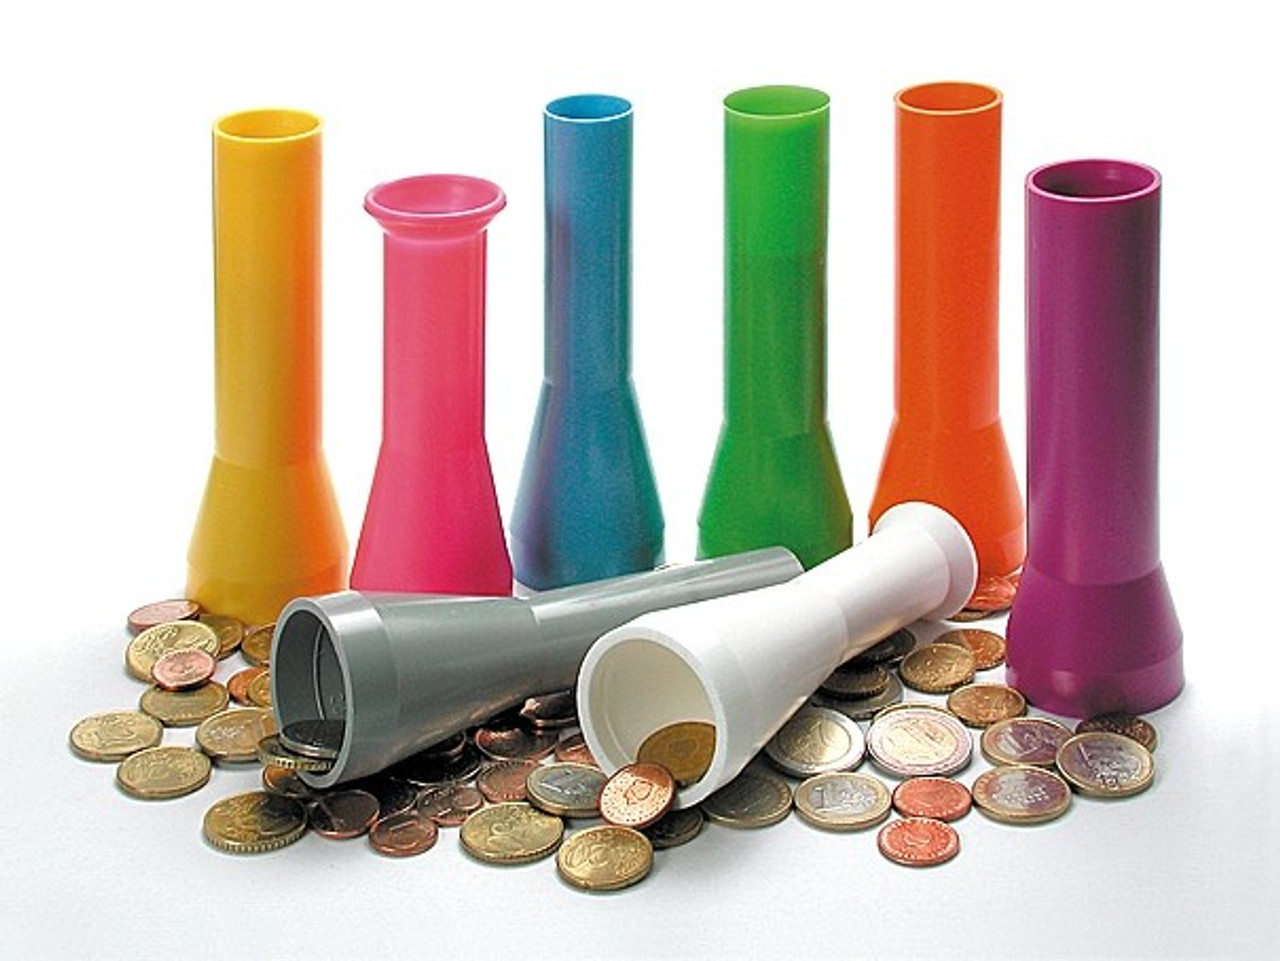 Semacon Packaging Tubes for Model S-530, U.S 1 Cent Coins